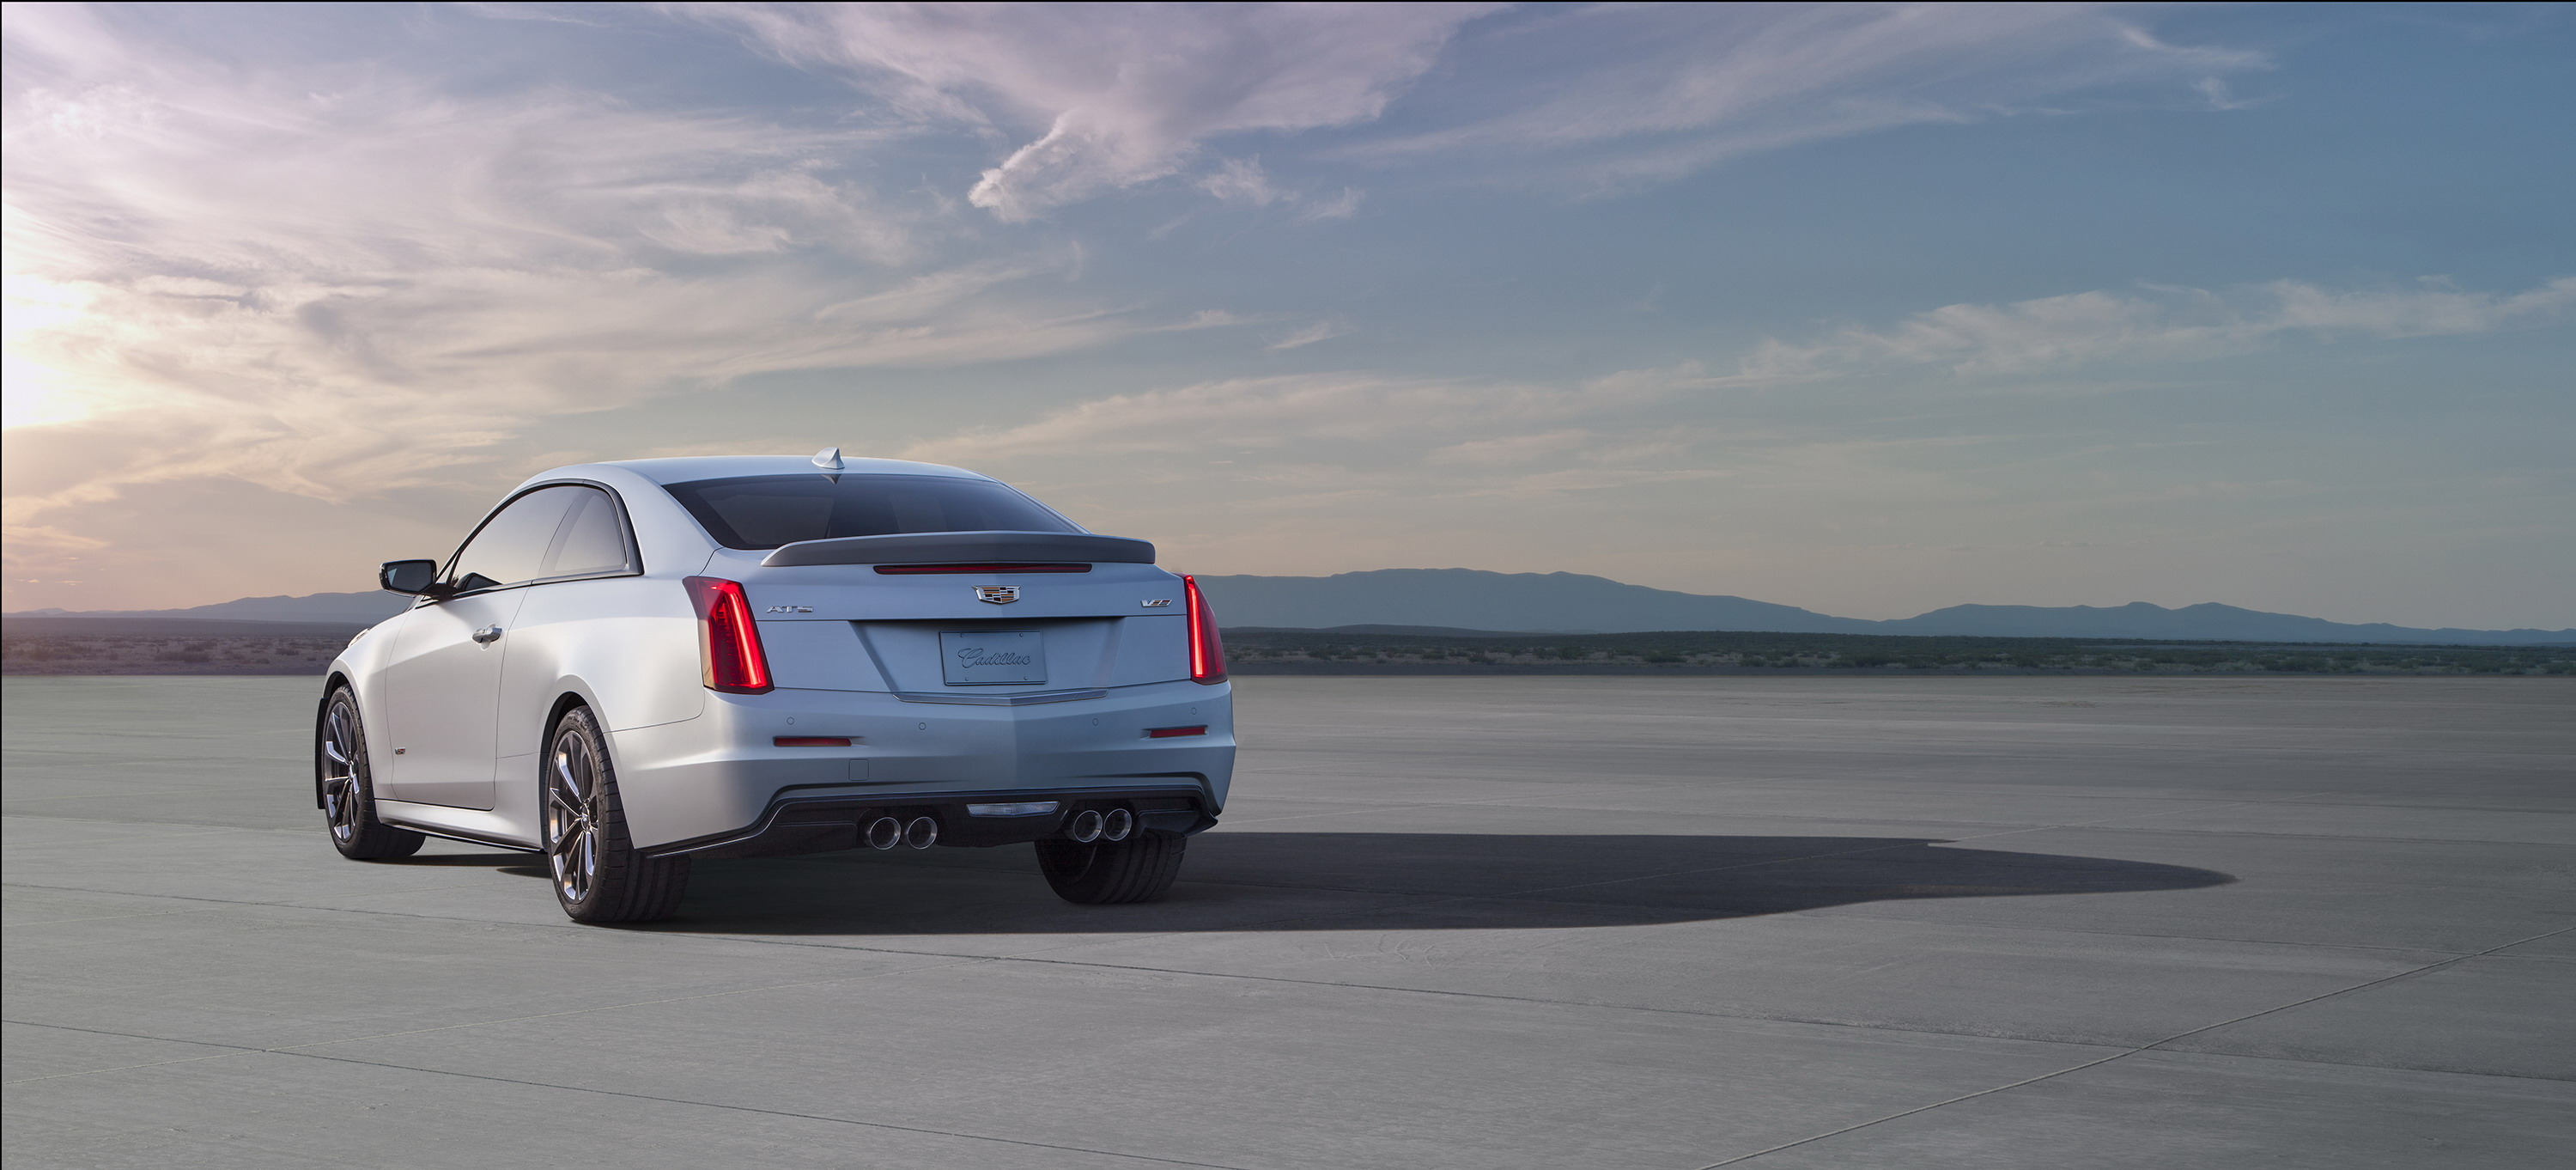 drive of review coupe performance cts test ats hill simon awd expert cadillac